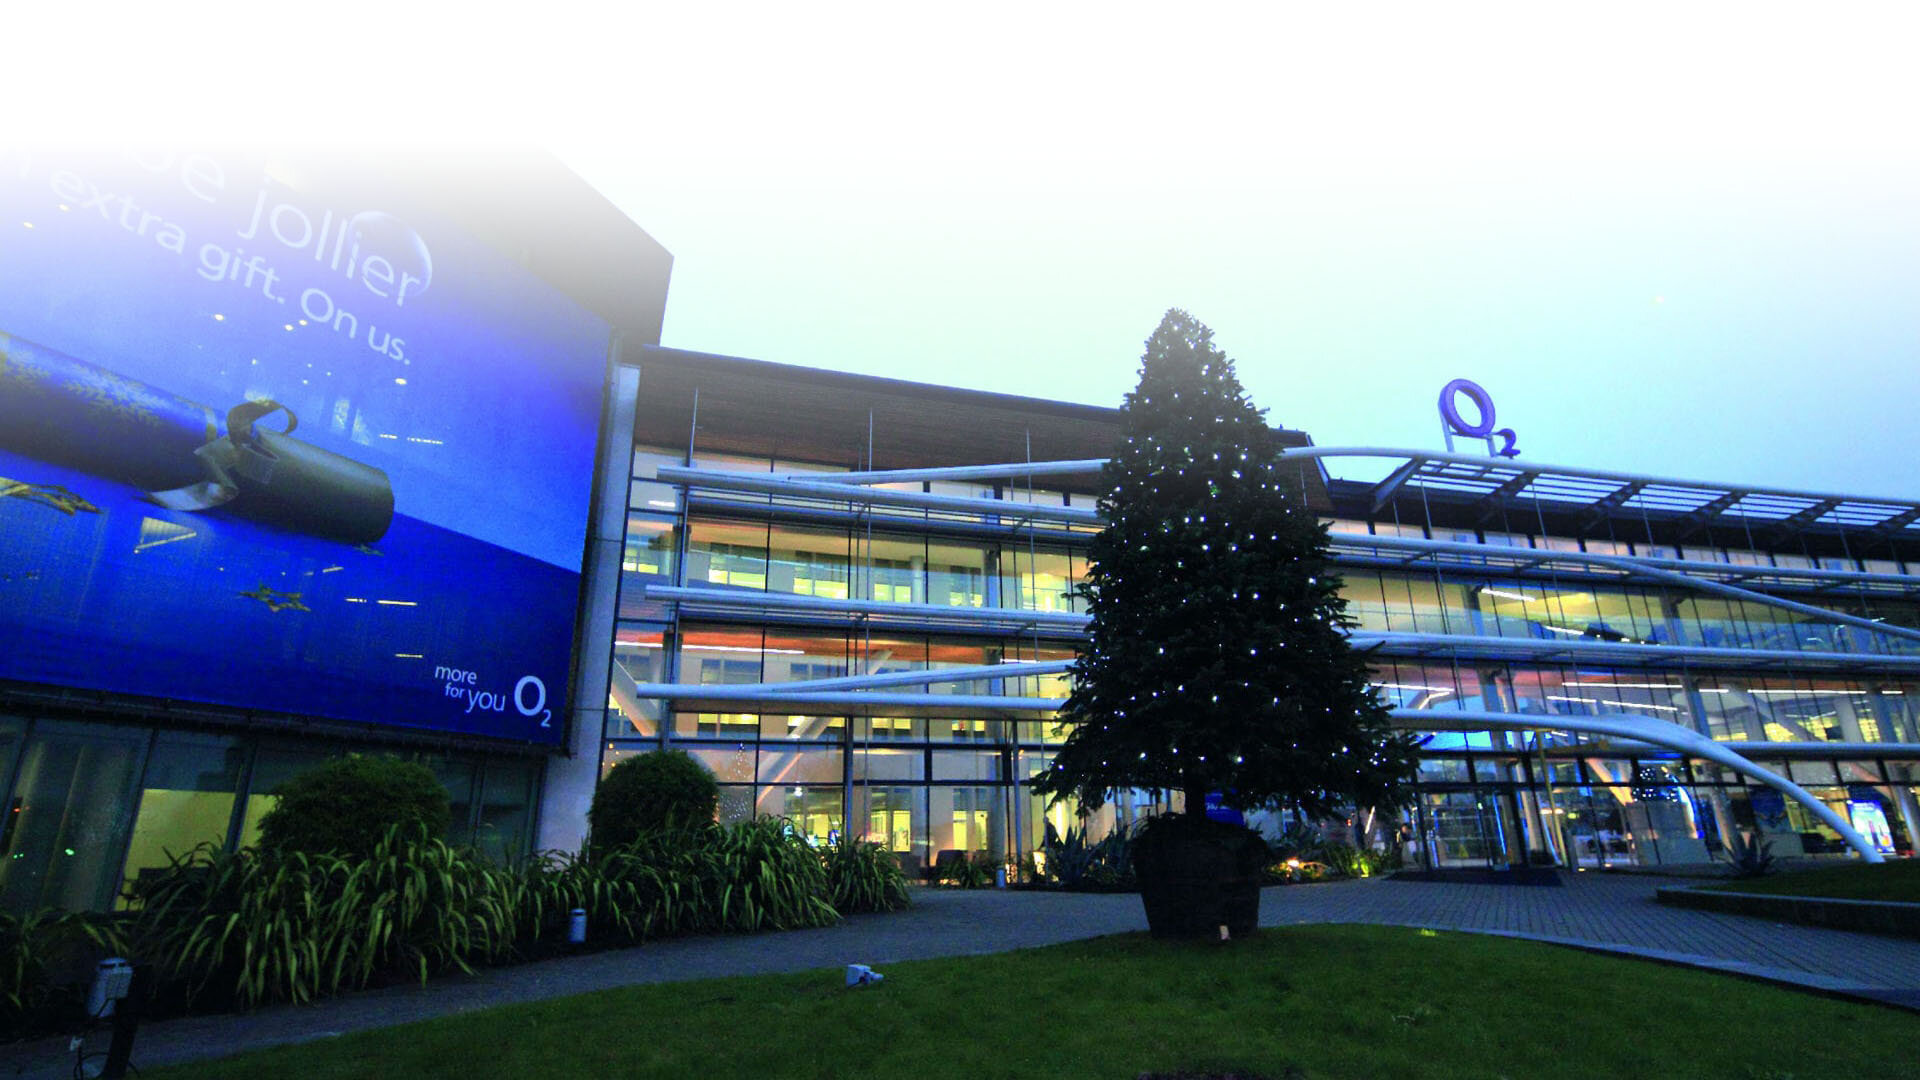 ISS O2 at Slough